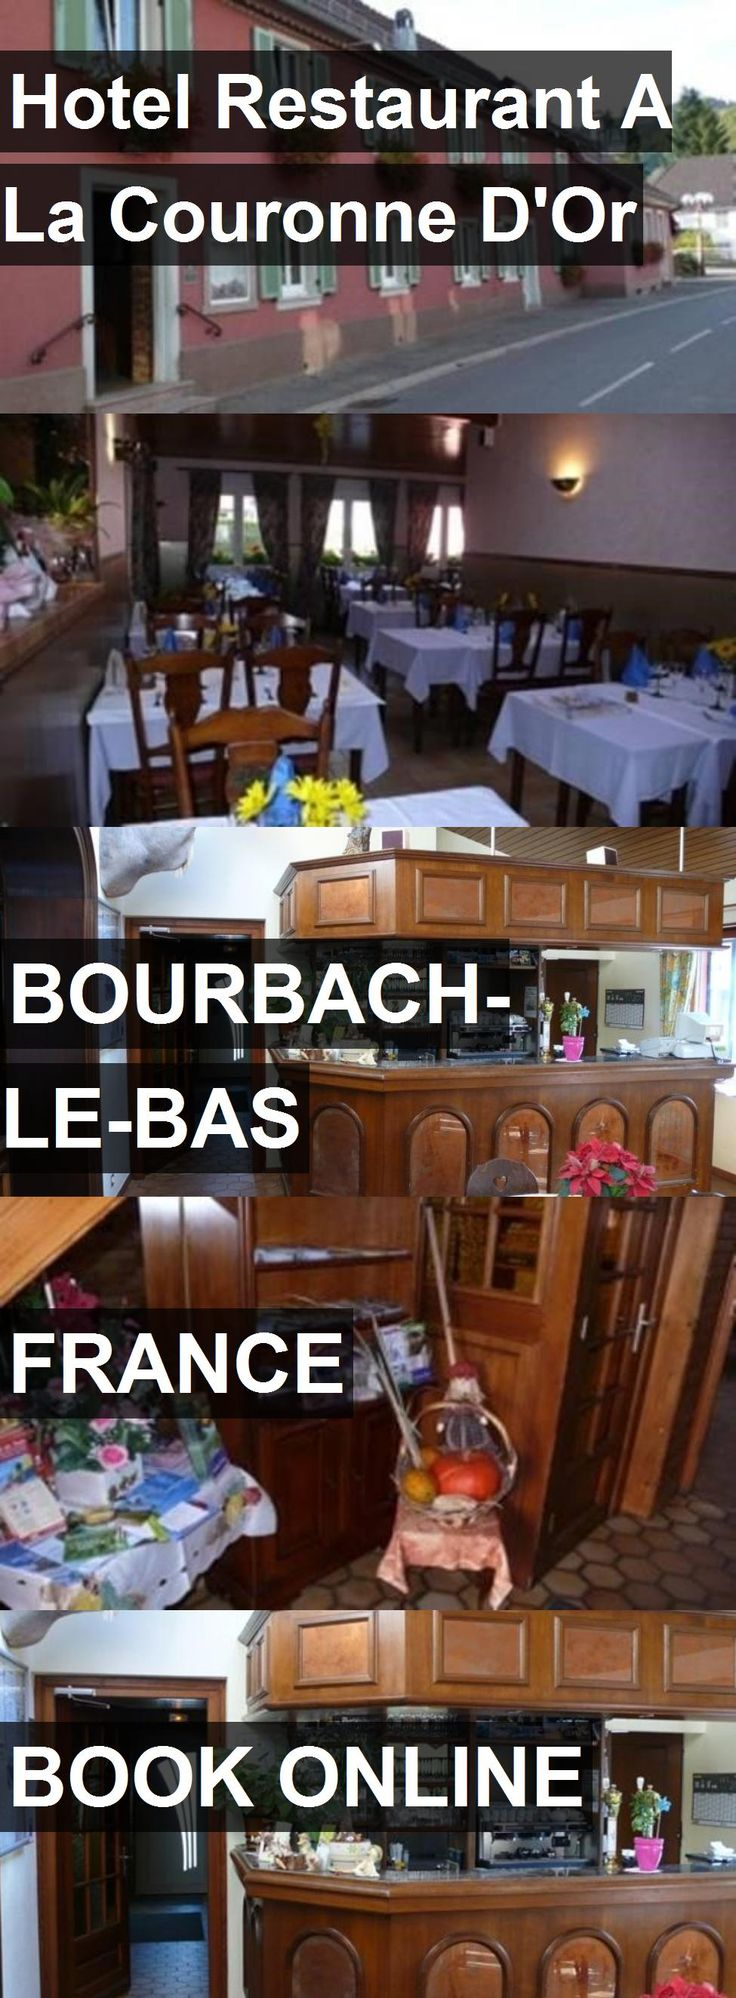 Hotel Restaurant A La Couronne D'Or in Bourbach-le-Bas, France. For more information, photos, reviews and best prices please follow the link. #France #Bourbach-le-Bas #travel #vacation #hotel